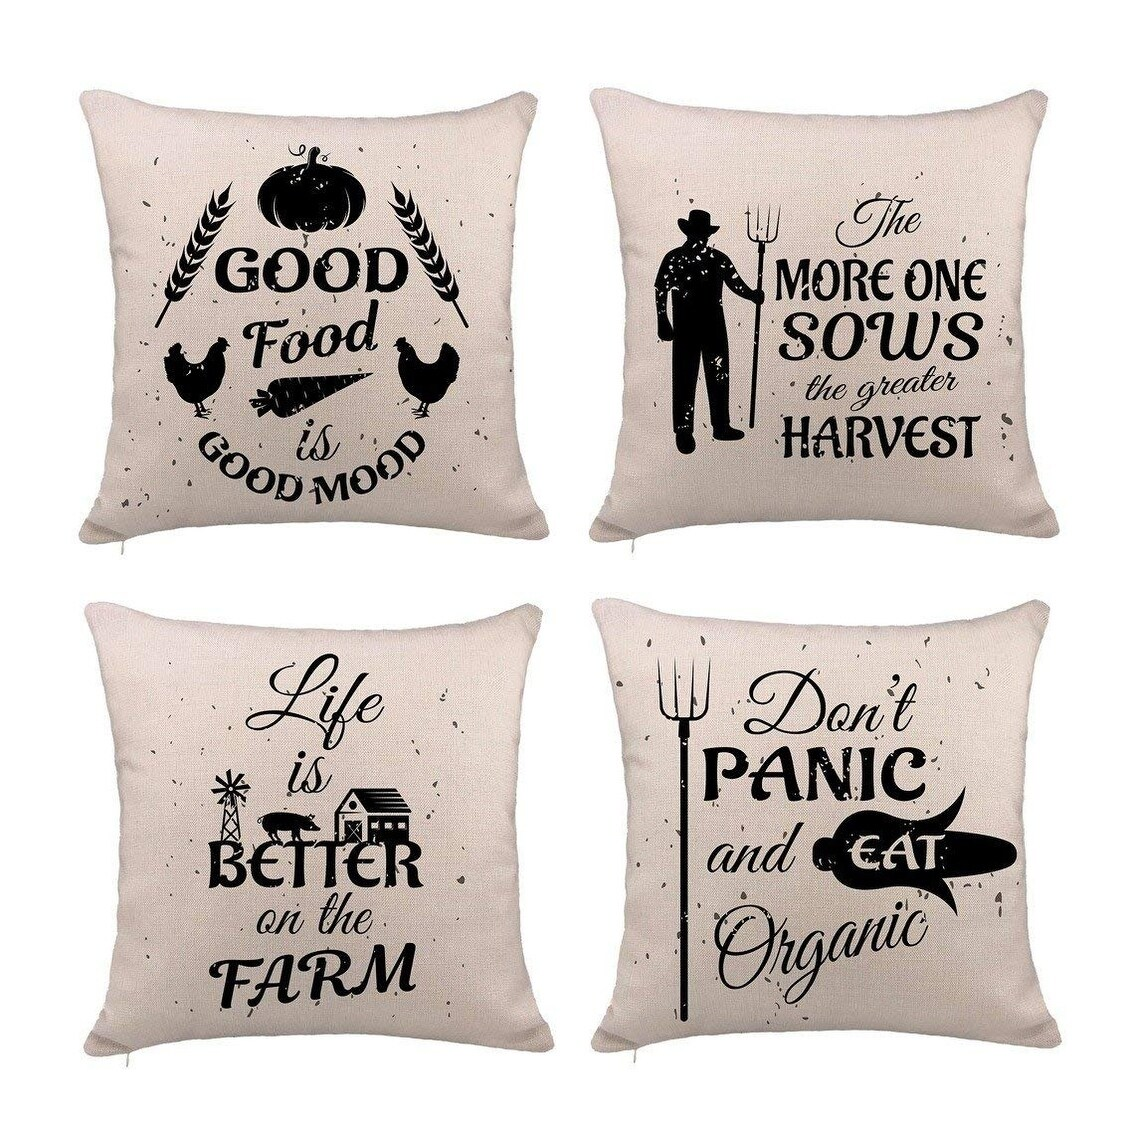 Sofa Quotes Farmhouse Quotes Pillow Cover Cushion Case For Sofa 18